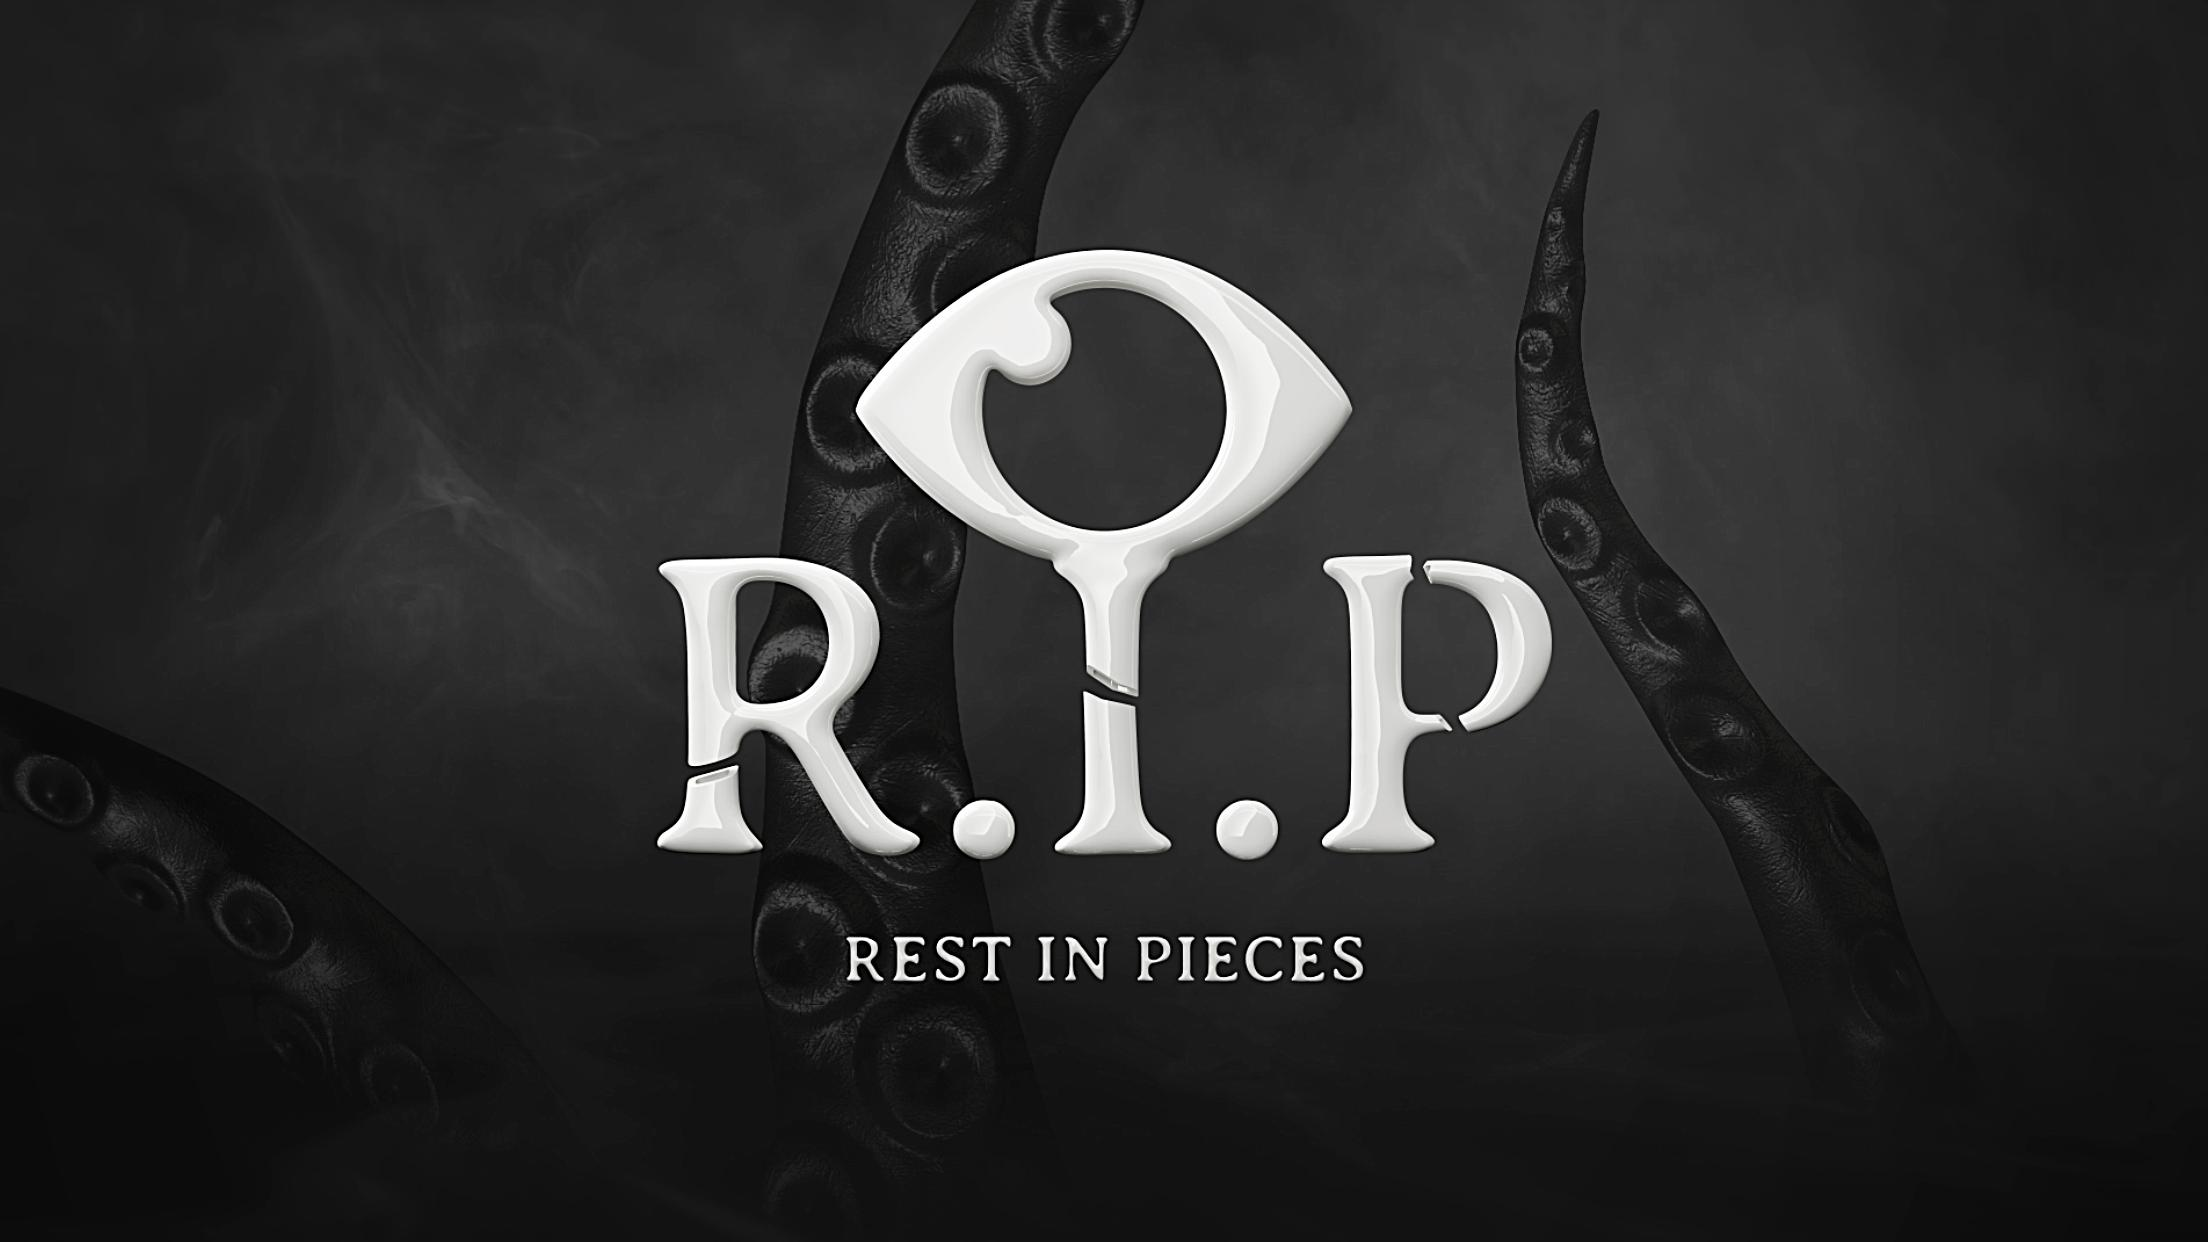 Rest in Pieces